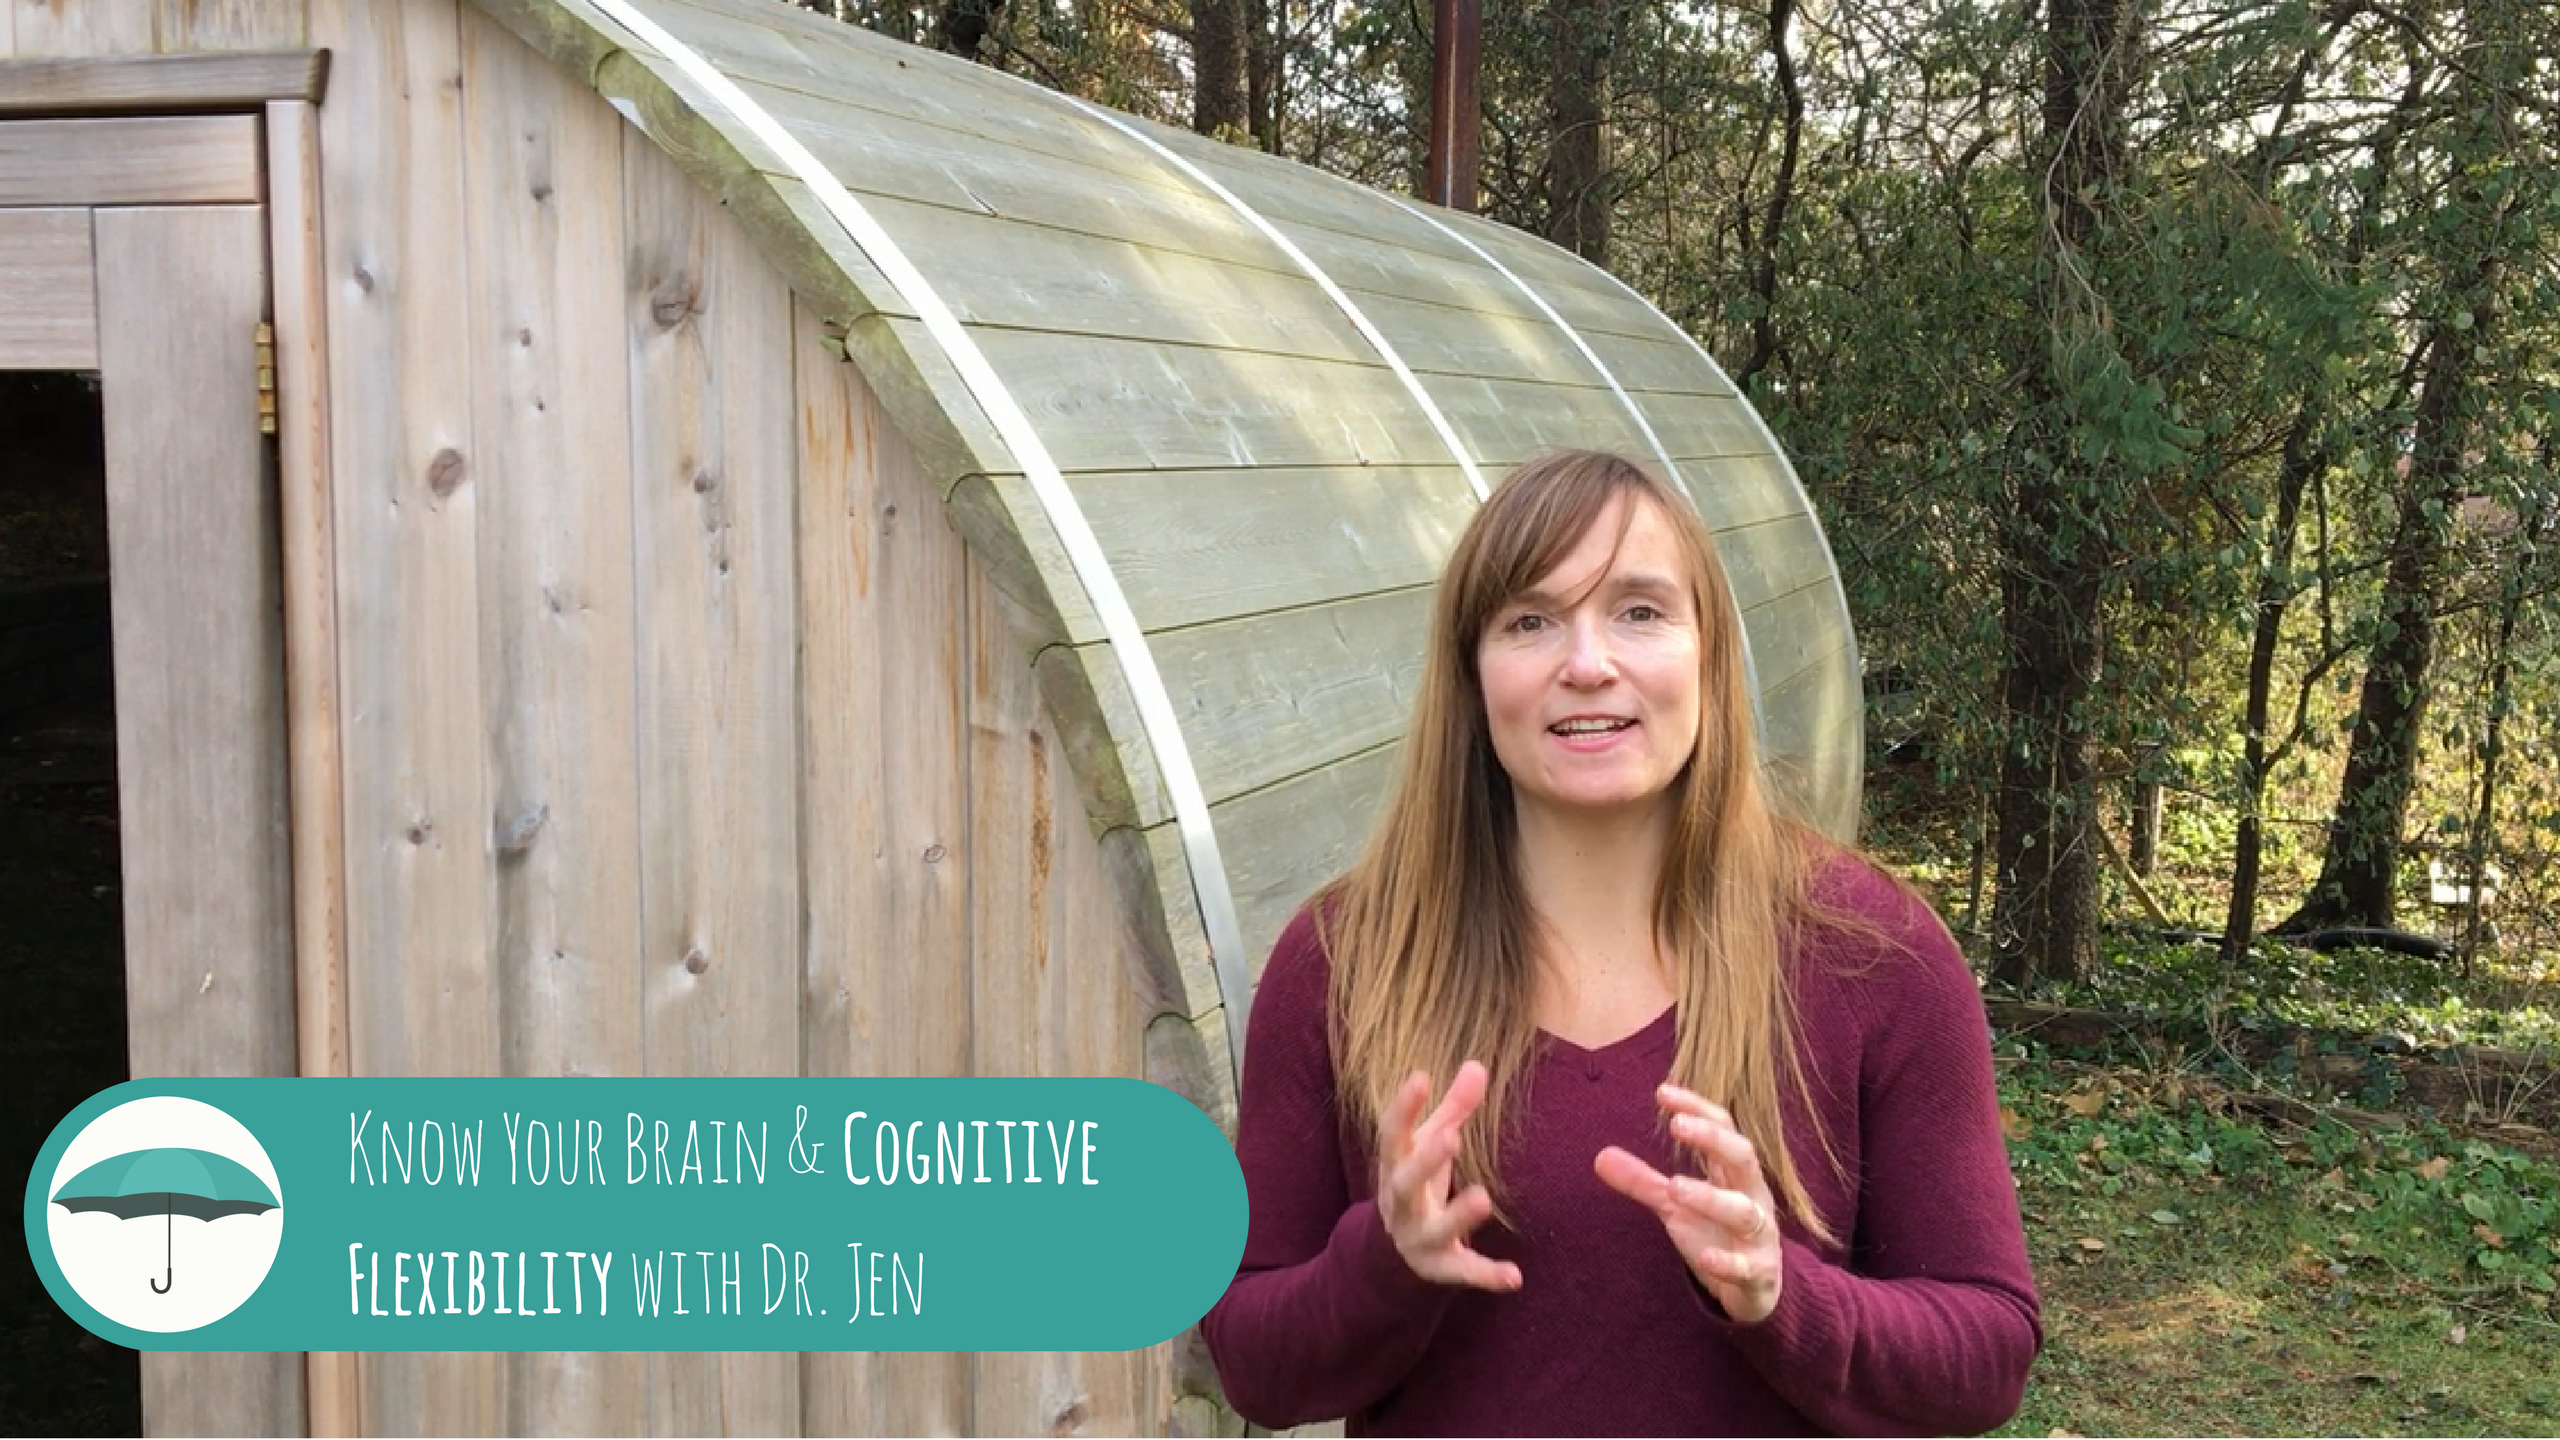 Know Your Brain and Cognitive Flexibility with Dr. Jen